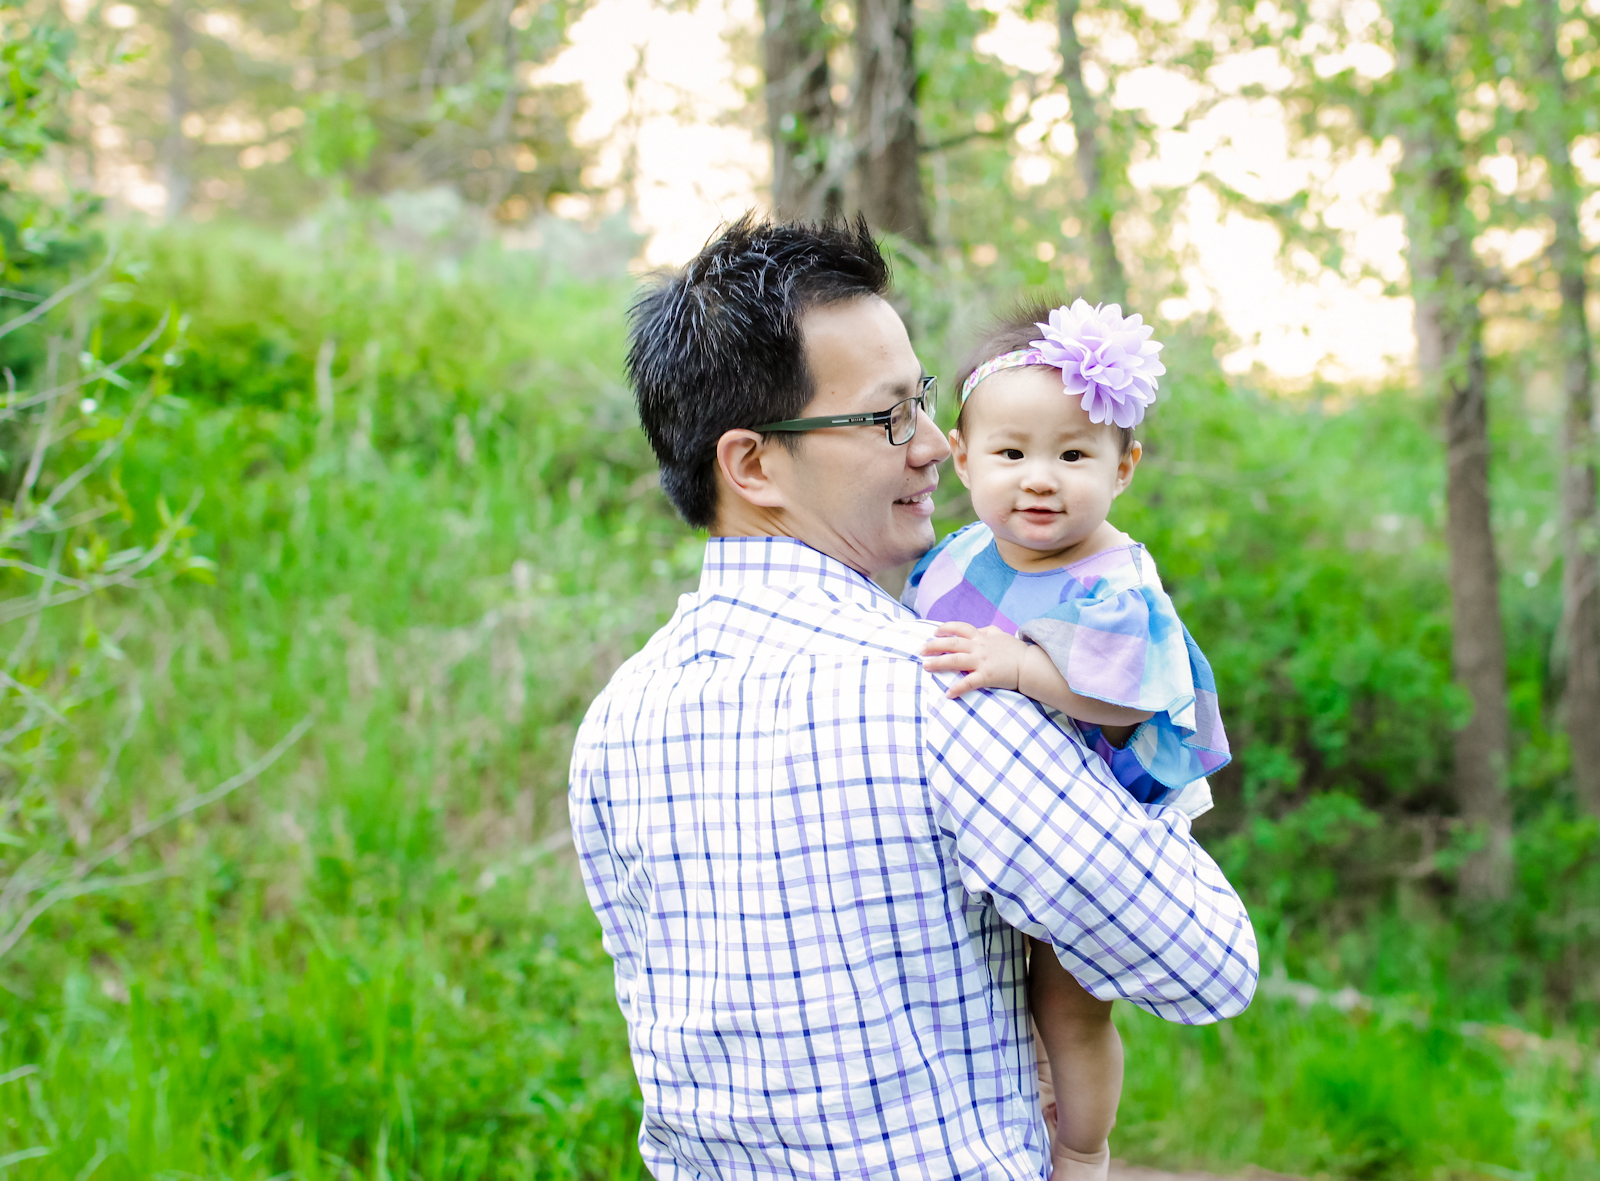 Sandy a la Mode | Family Pictures at Tibble Fork, Utah